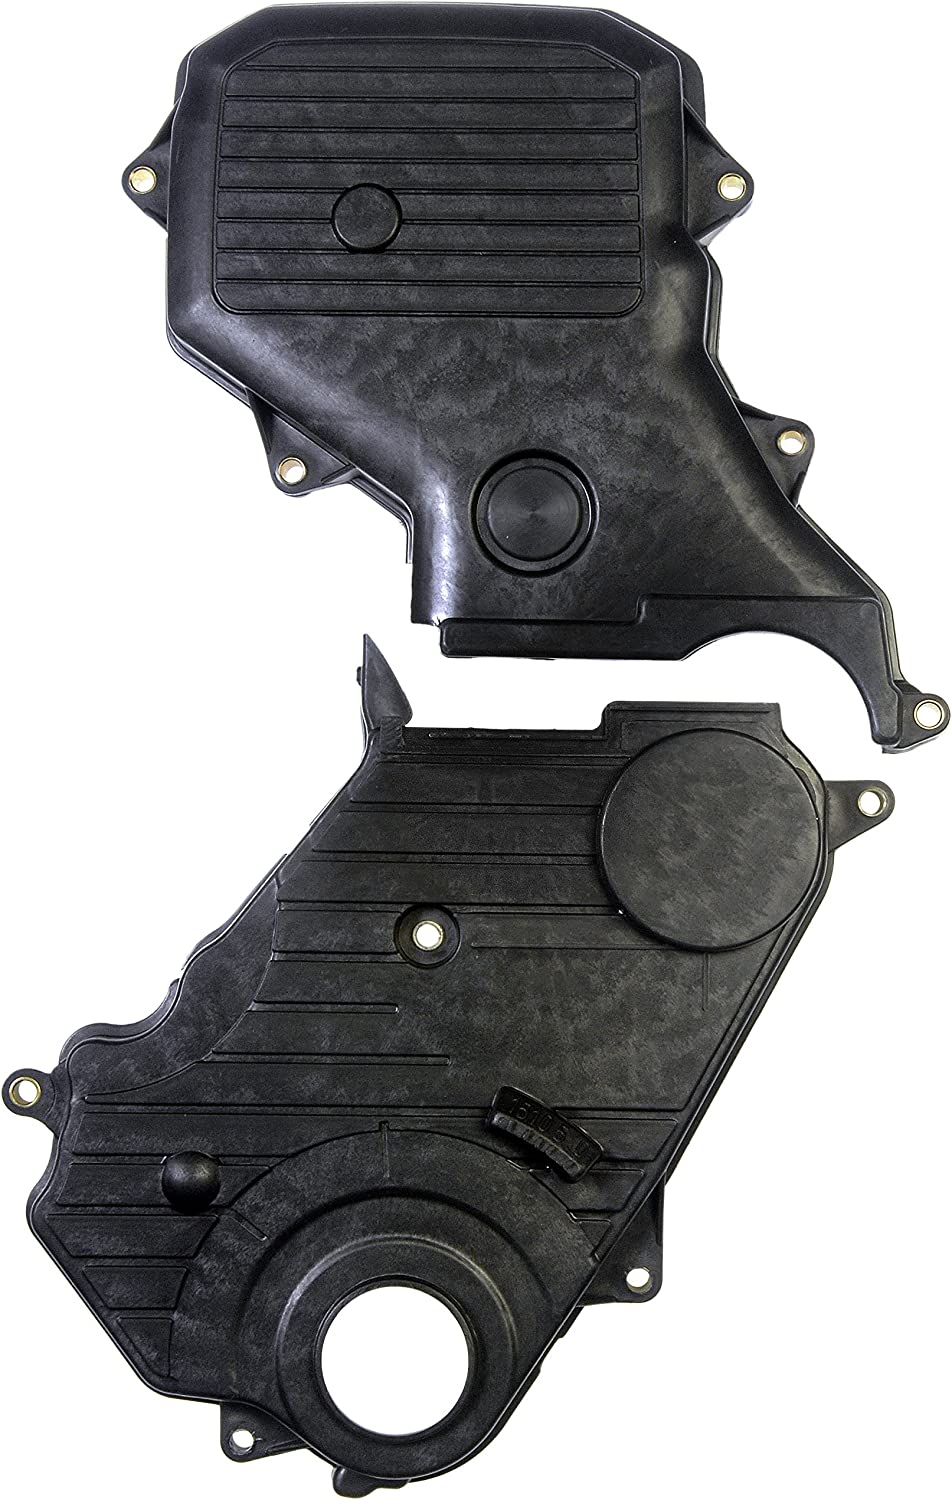 Genuine Toyota 11302-74040 Timing Cover Sub-Assembly